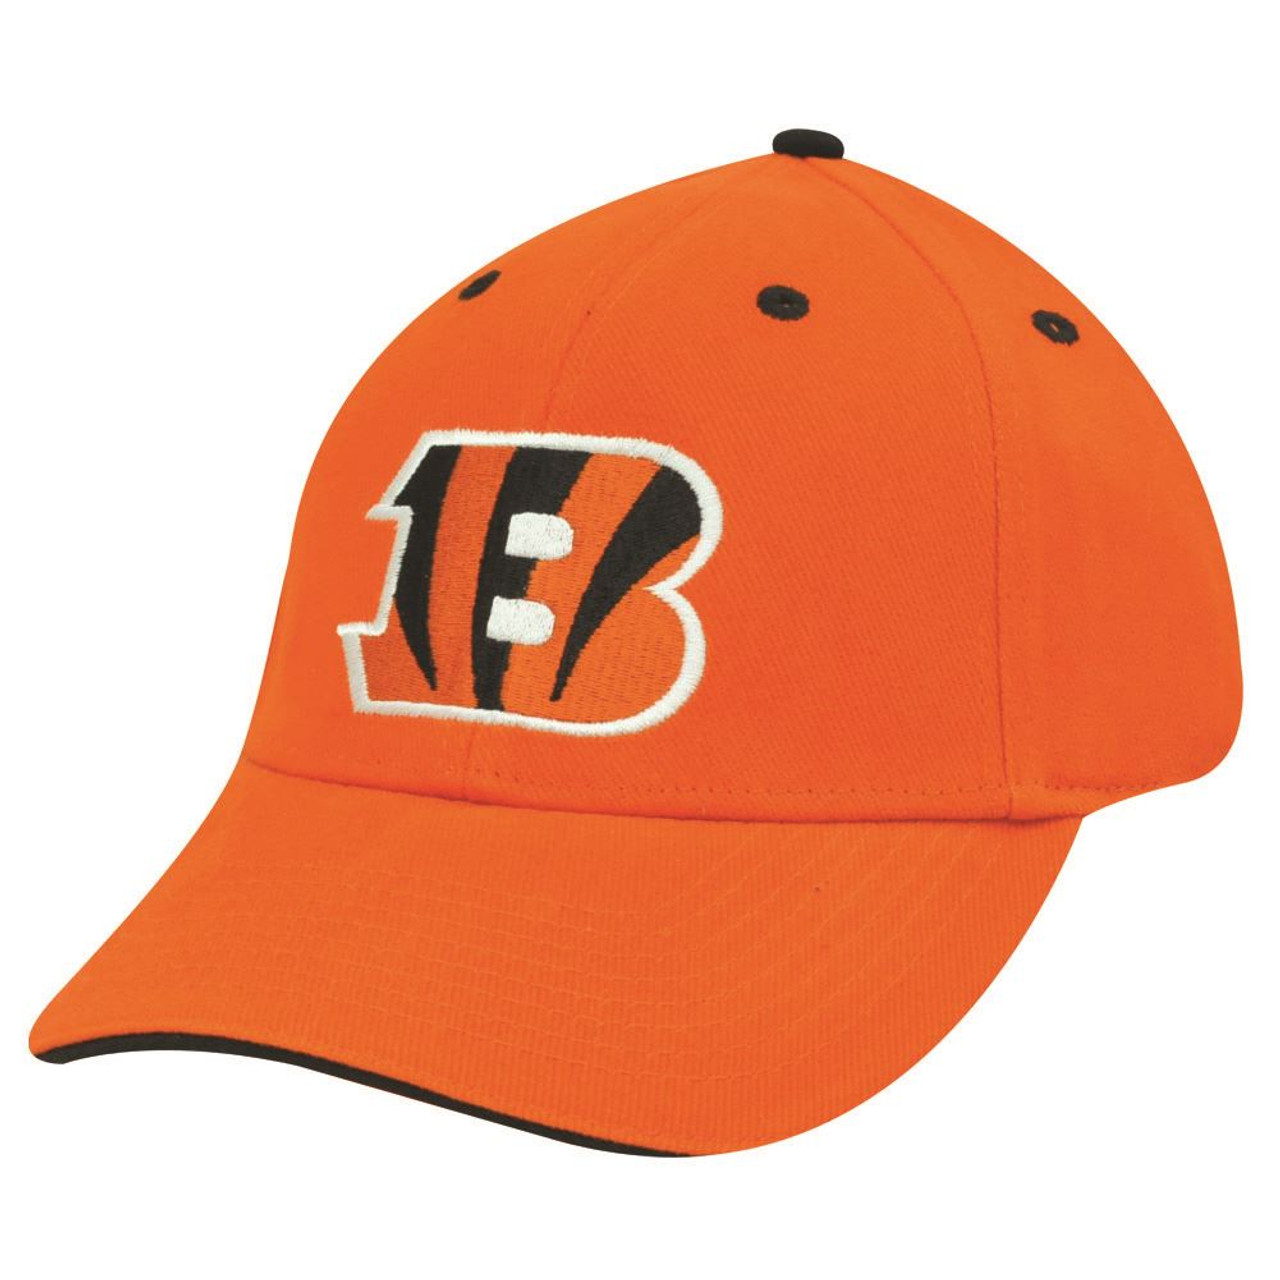 NFL CINCINNATI BENGALS ORANGE COTTON VELCRO HAT CAP Cap Store  for sale